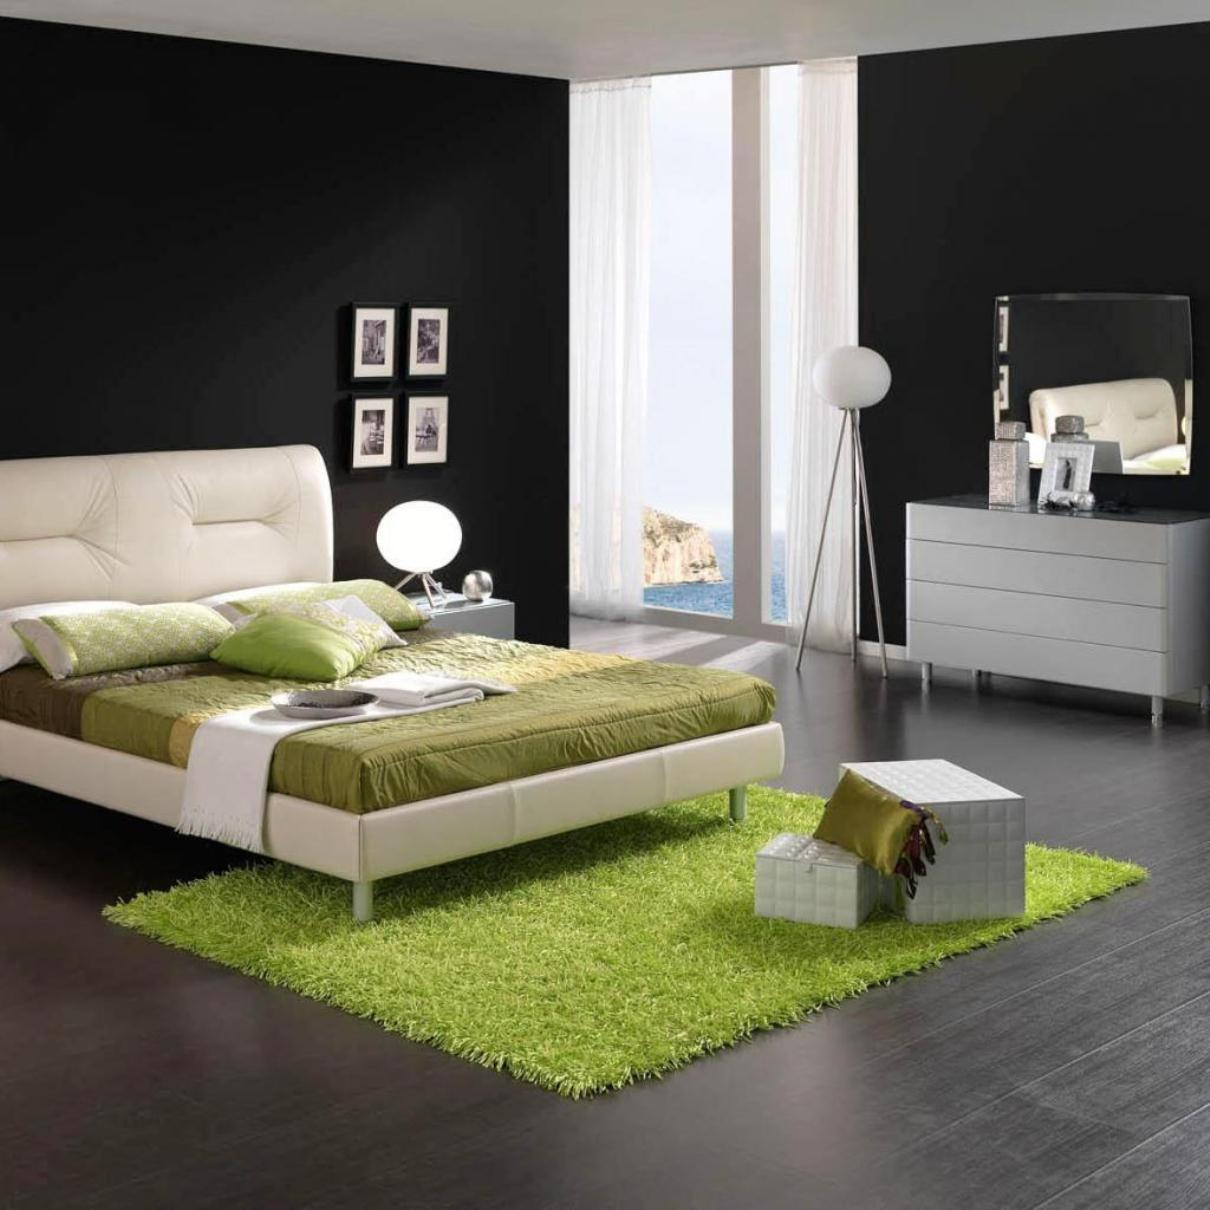 Green touch in other element of the bedroom decoration